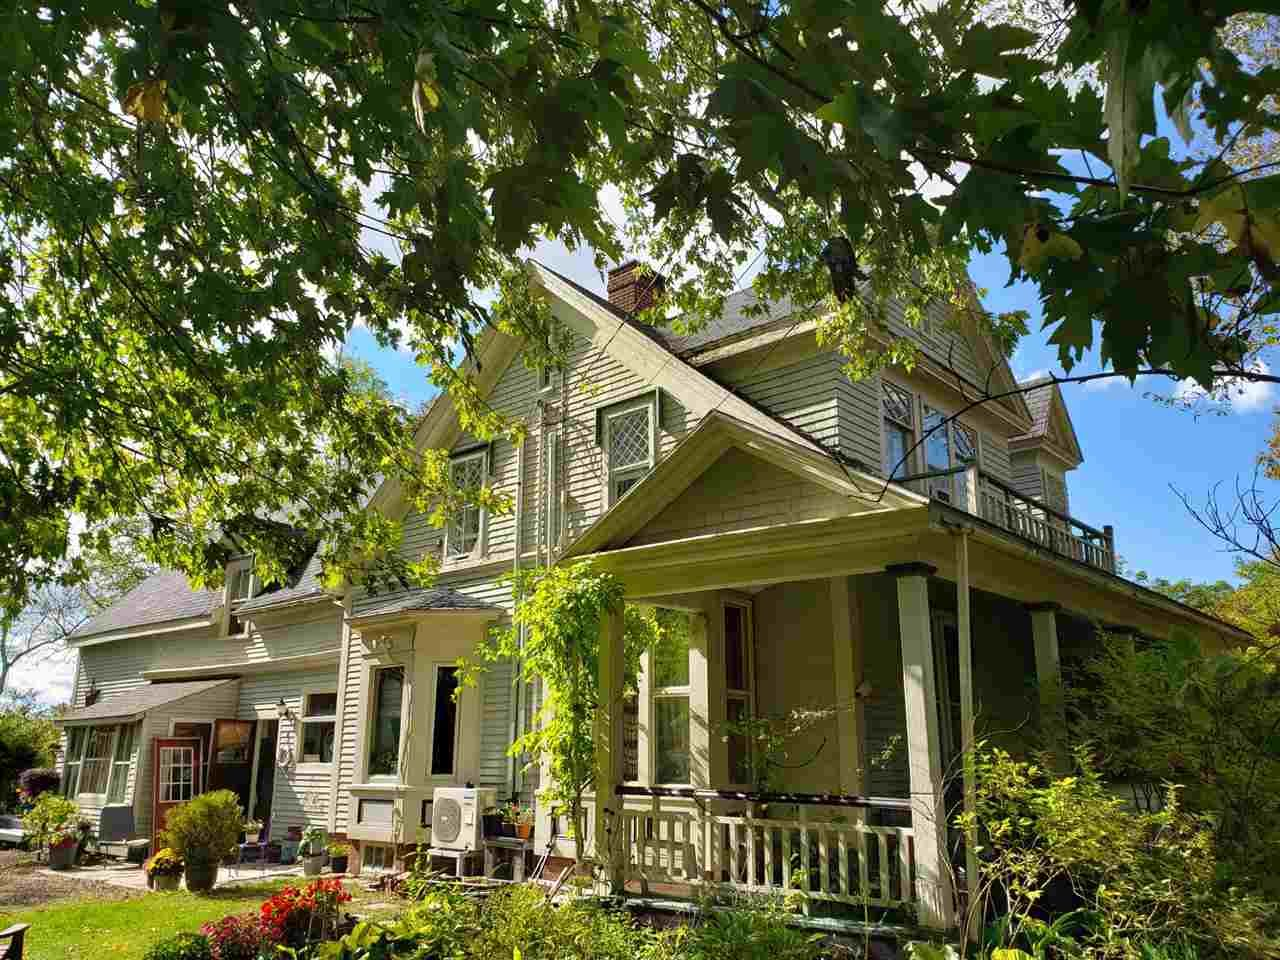 Main Photo: 693/695 St. George Street in Annapolis Royal: 400-Annapolis County Residential for sale (Annapolis Valley)  : MLS®# 202020770